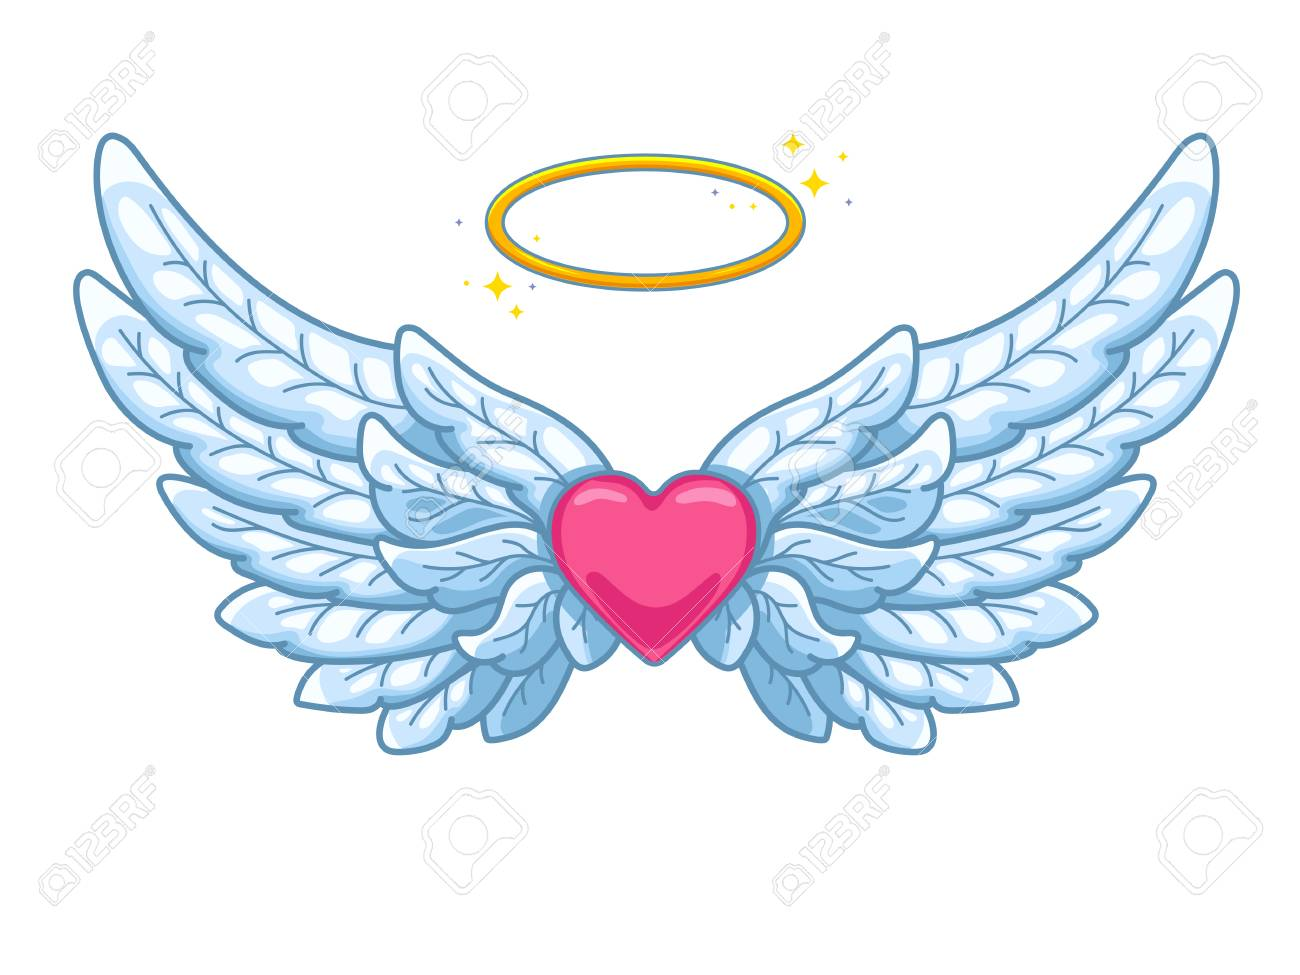 A Pair Of Wide Spread Angel Wings With Golden Halo Or Nimbus Royalty Free Cliparts Vectors And Stock Illustration Image 107025955